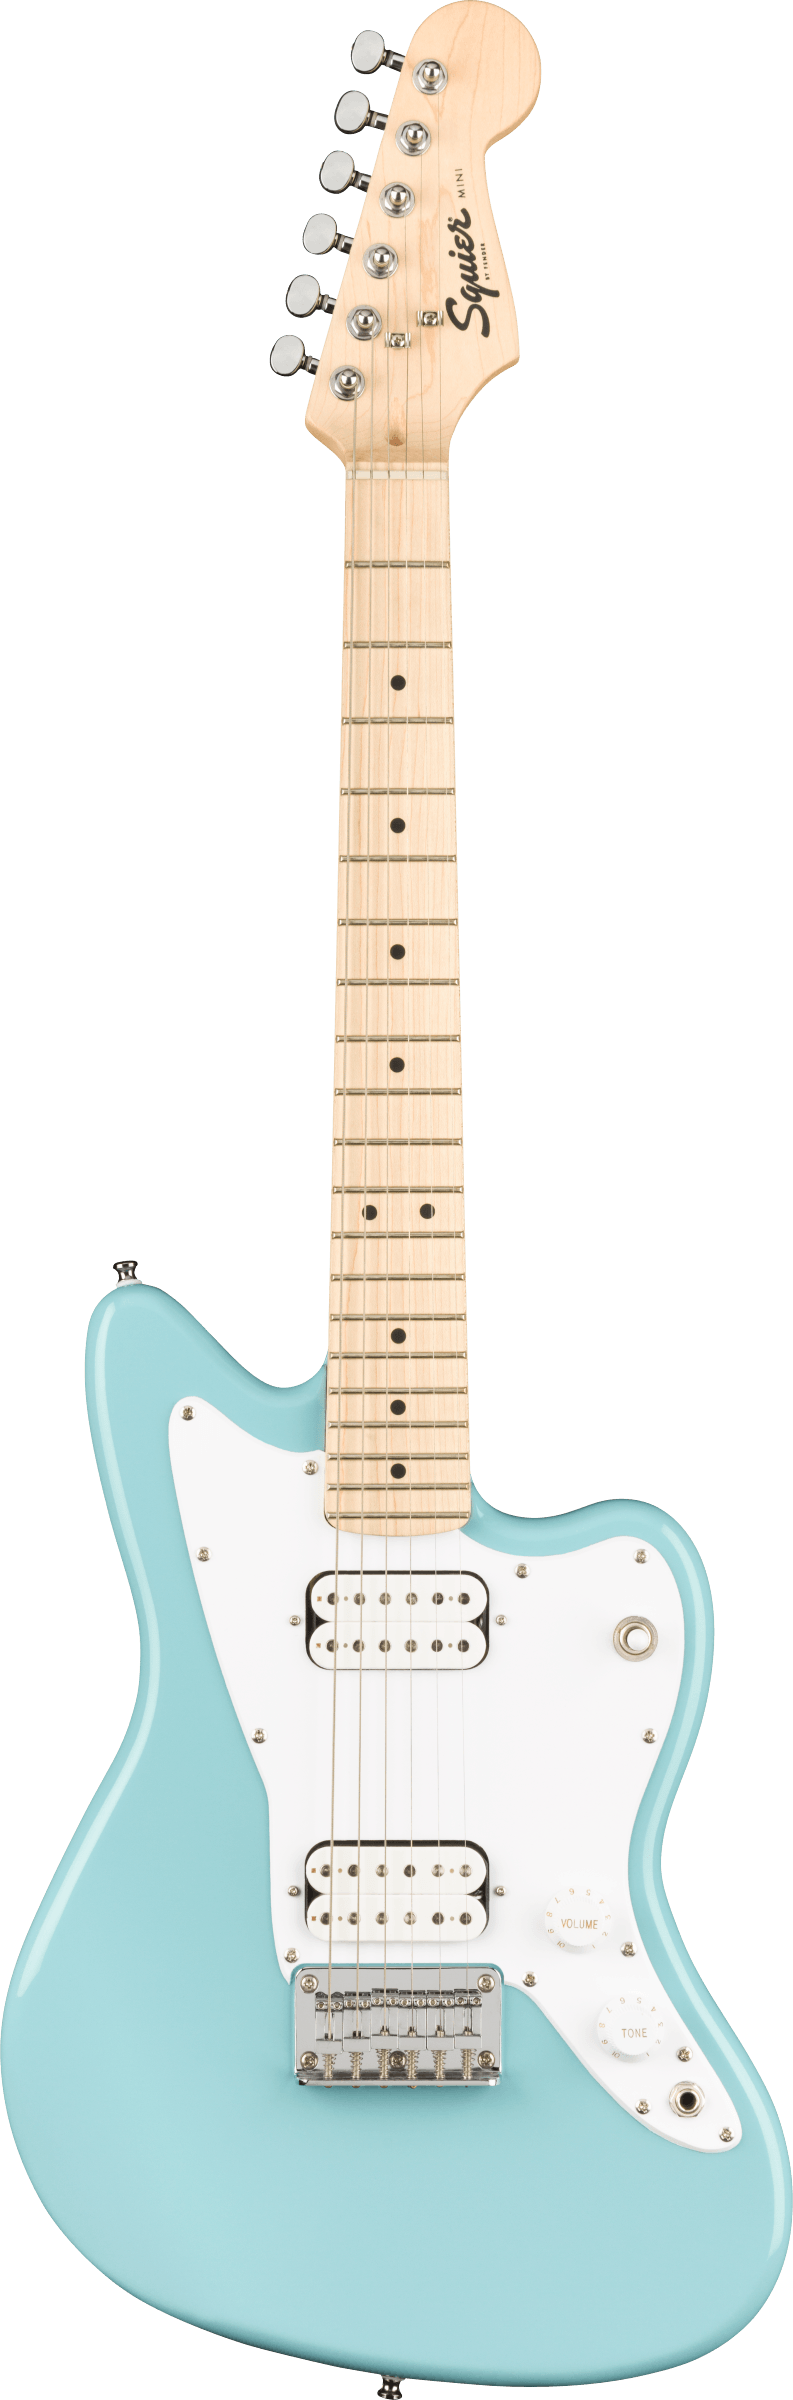 Squier Mini Jazzmaster HH Daphne Blue - Regent Sounds